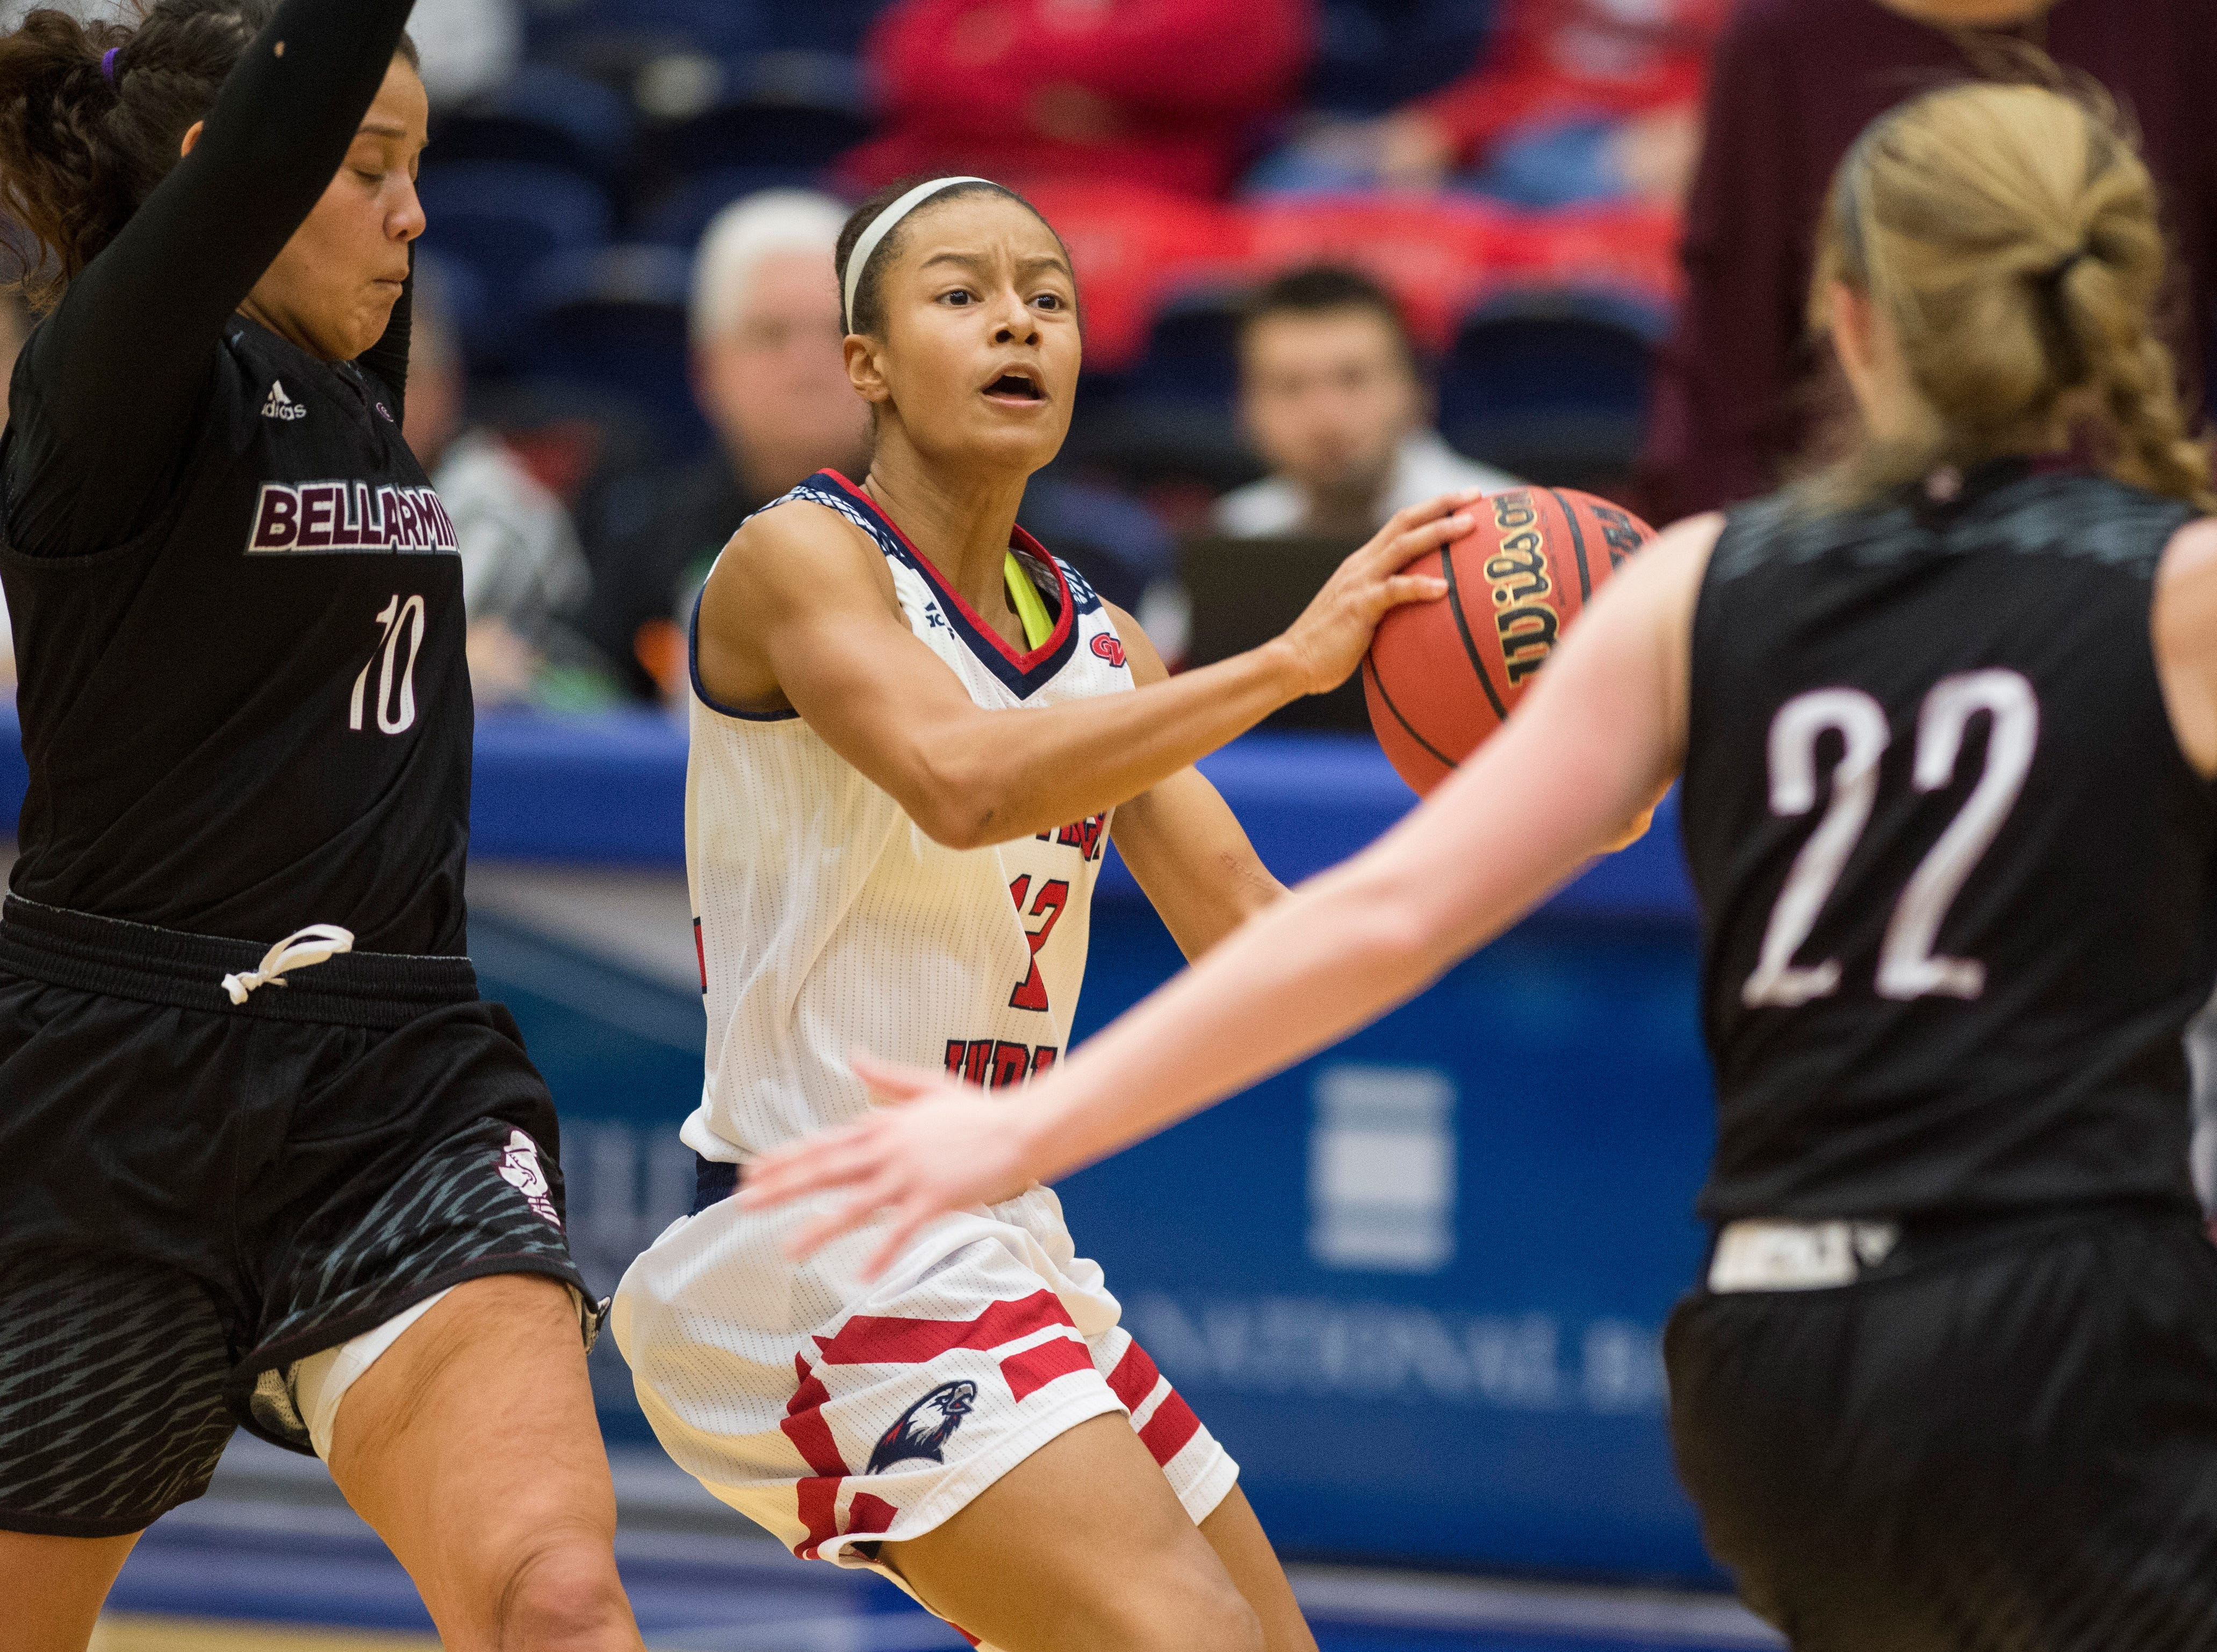 USI's Imani Guy (10) eyes the court for a pass during the USI vs Bellarmine game at the PAC Saturday, Dec. 1, 2018.